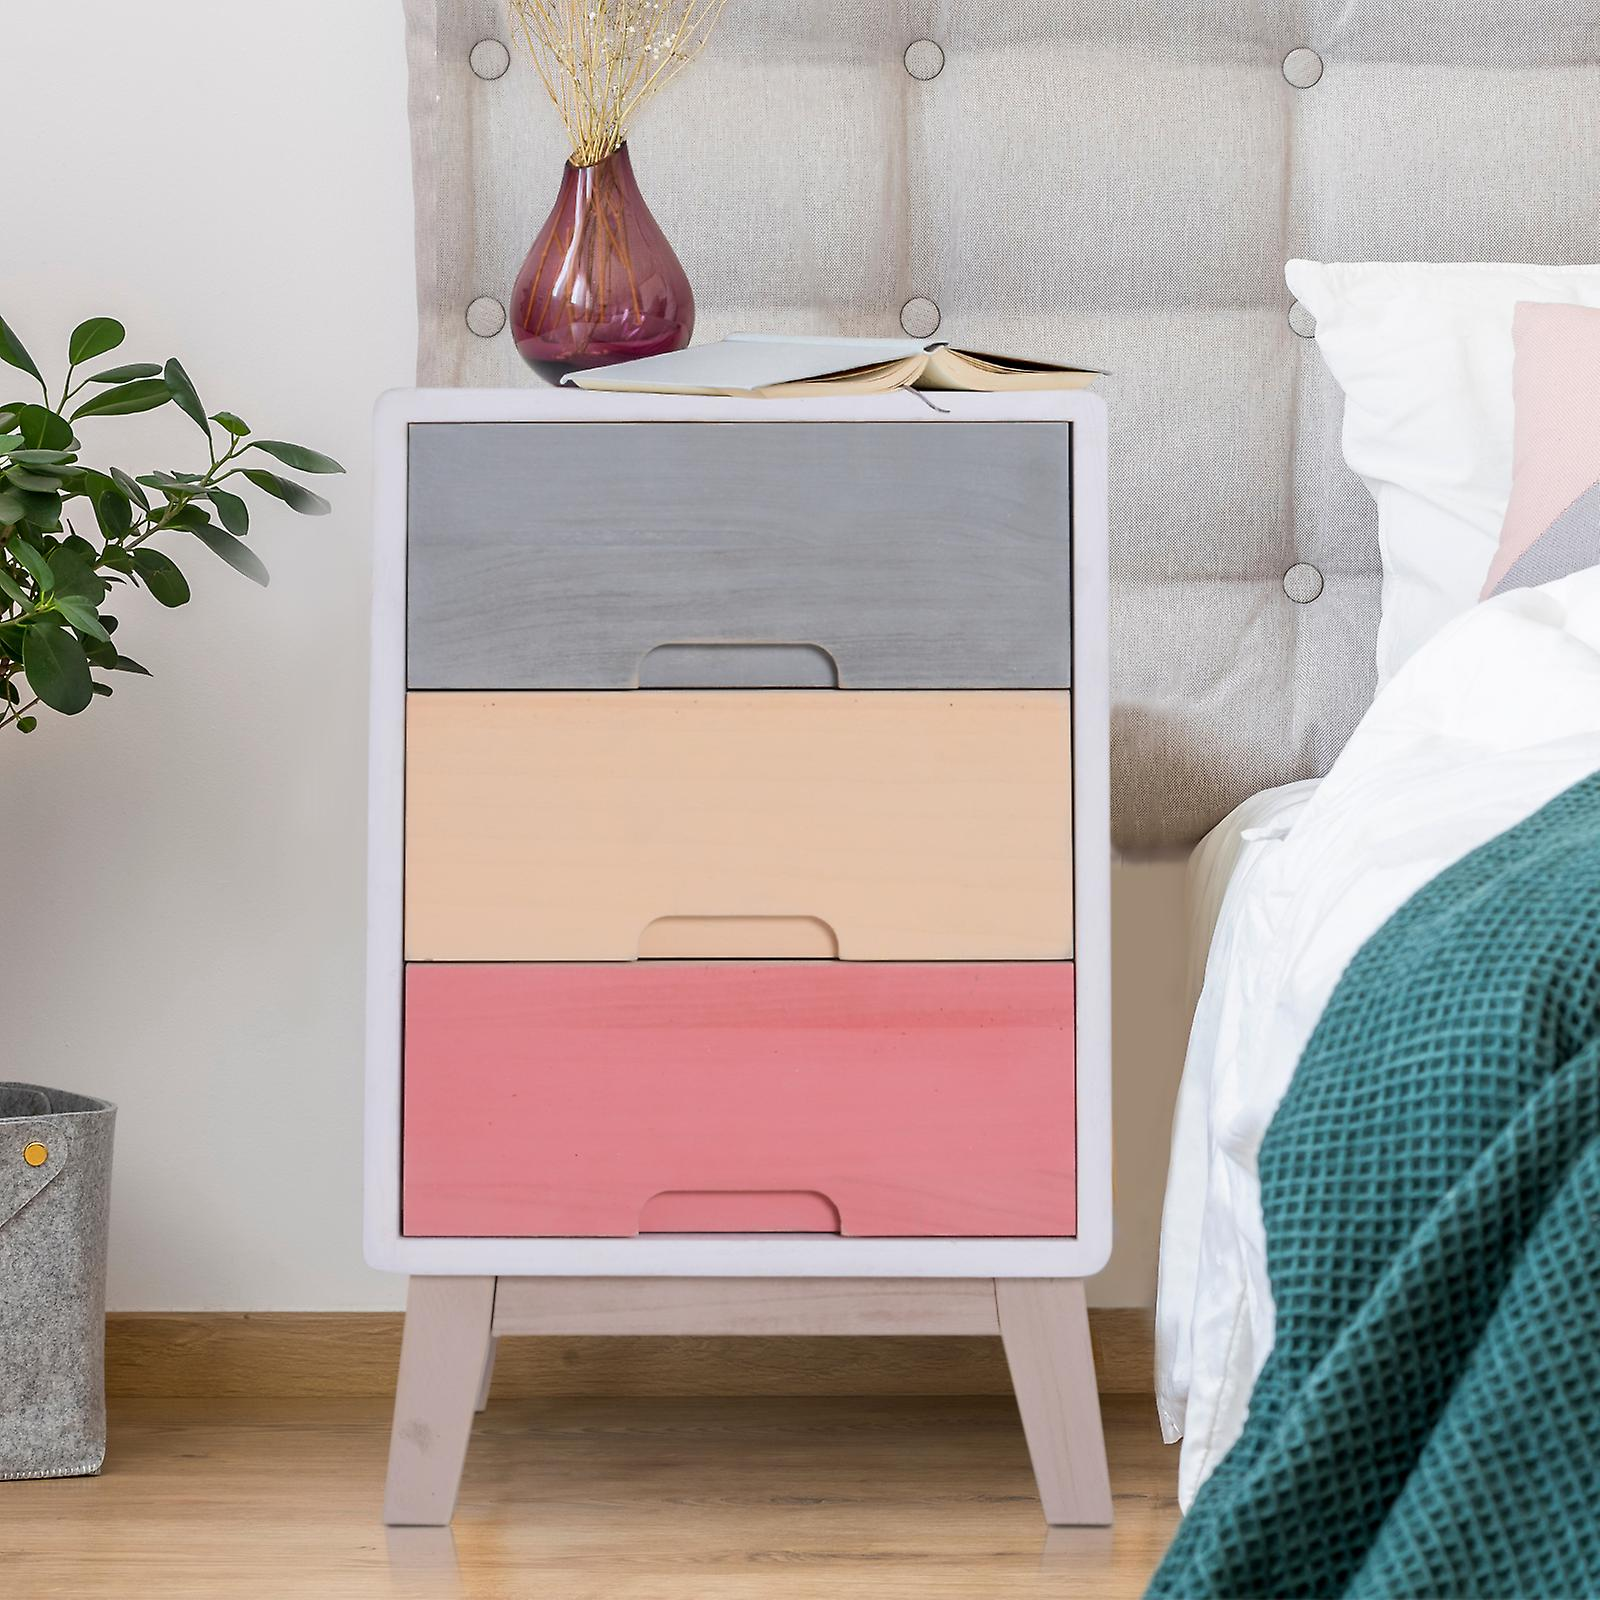 HOMCOM Wood 3 Drawers Chest Storage Stand Colourful Cabinet Bedside Table Night Stand Cabinet